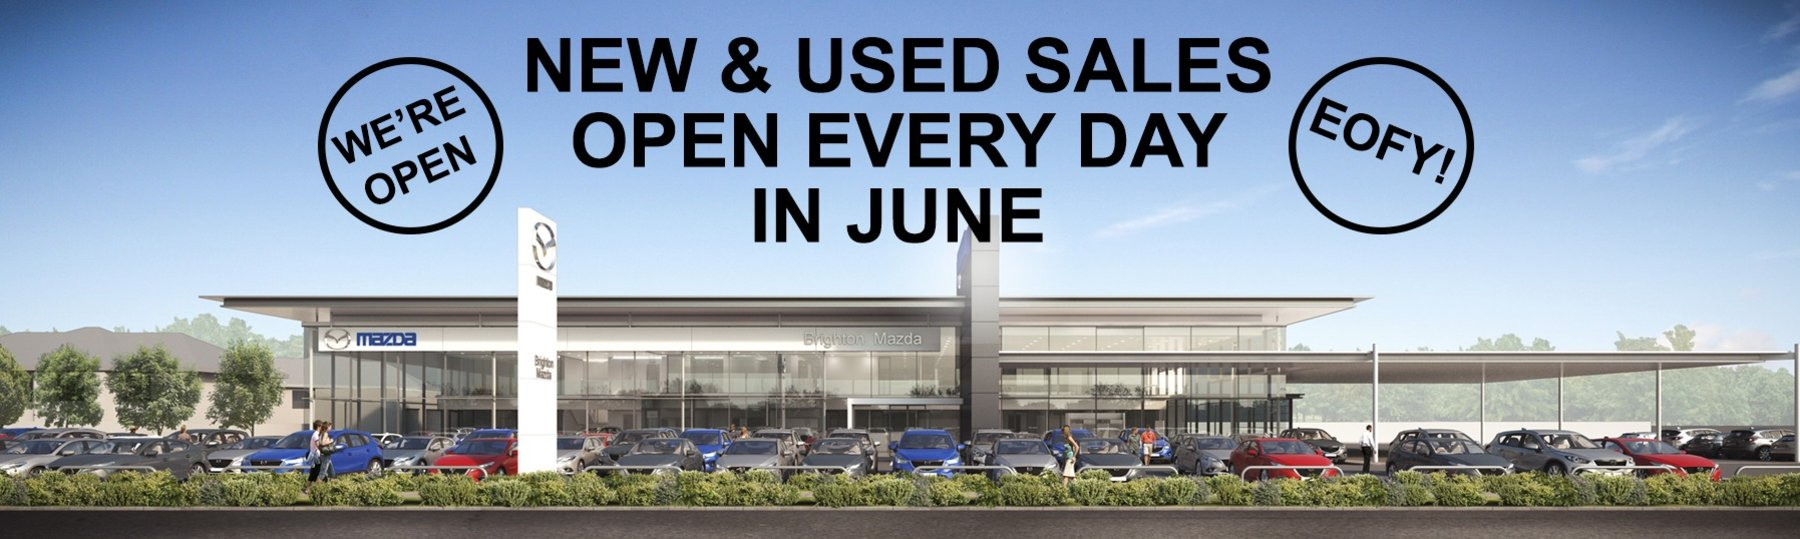 We're Open every day until the end of June!